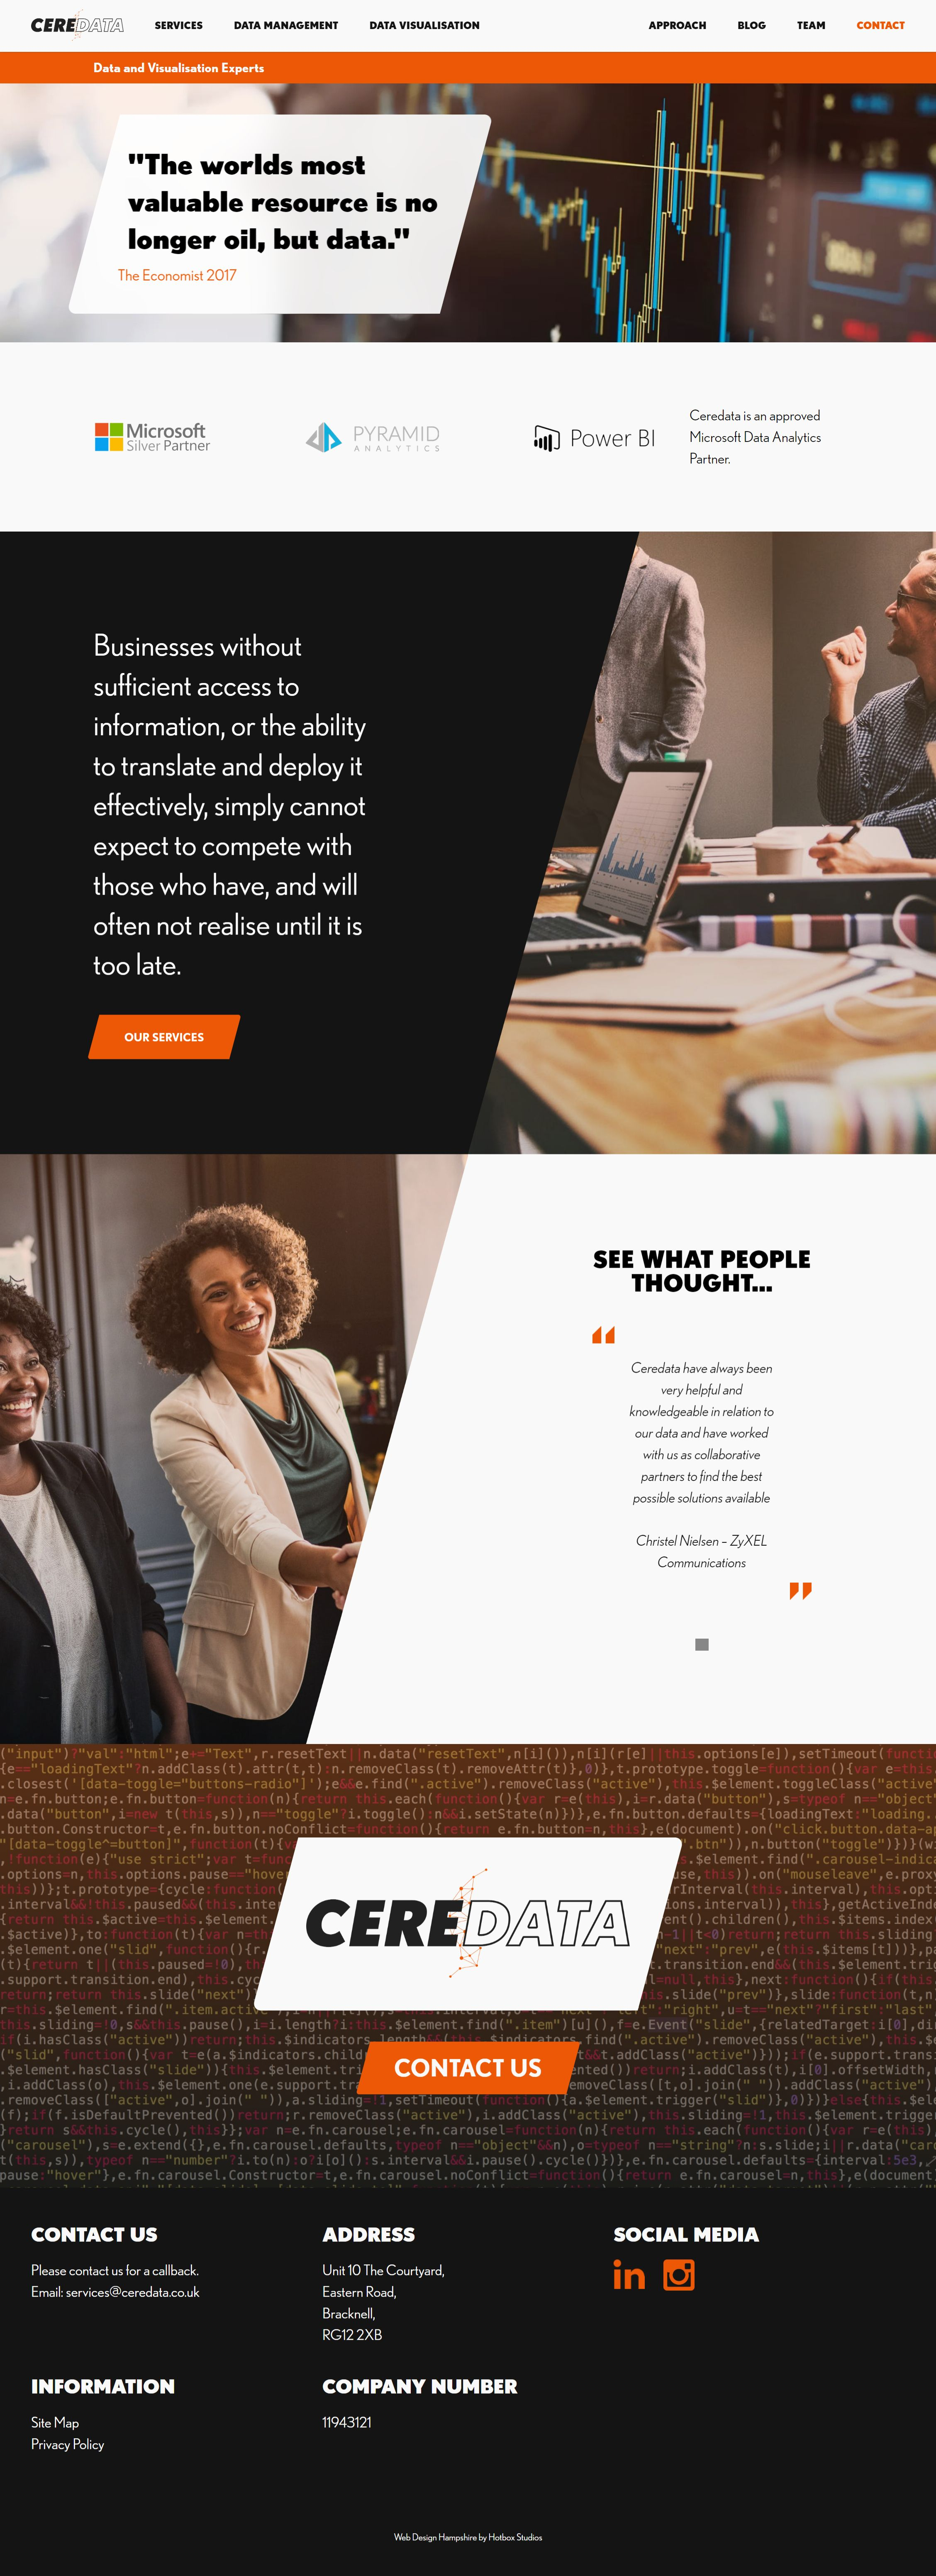 Ceredata Wordpress Web Design SP001 Homepage